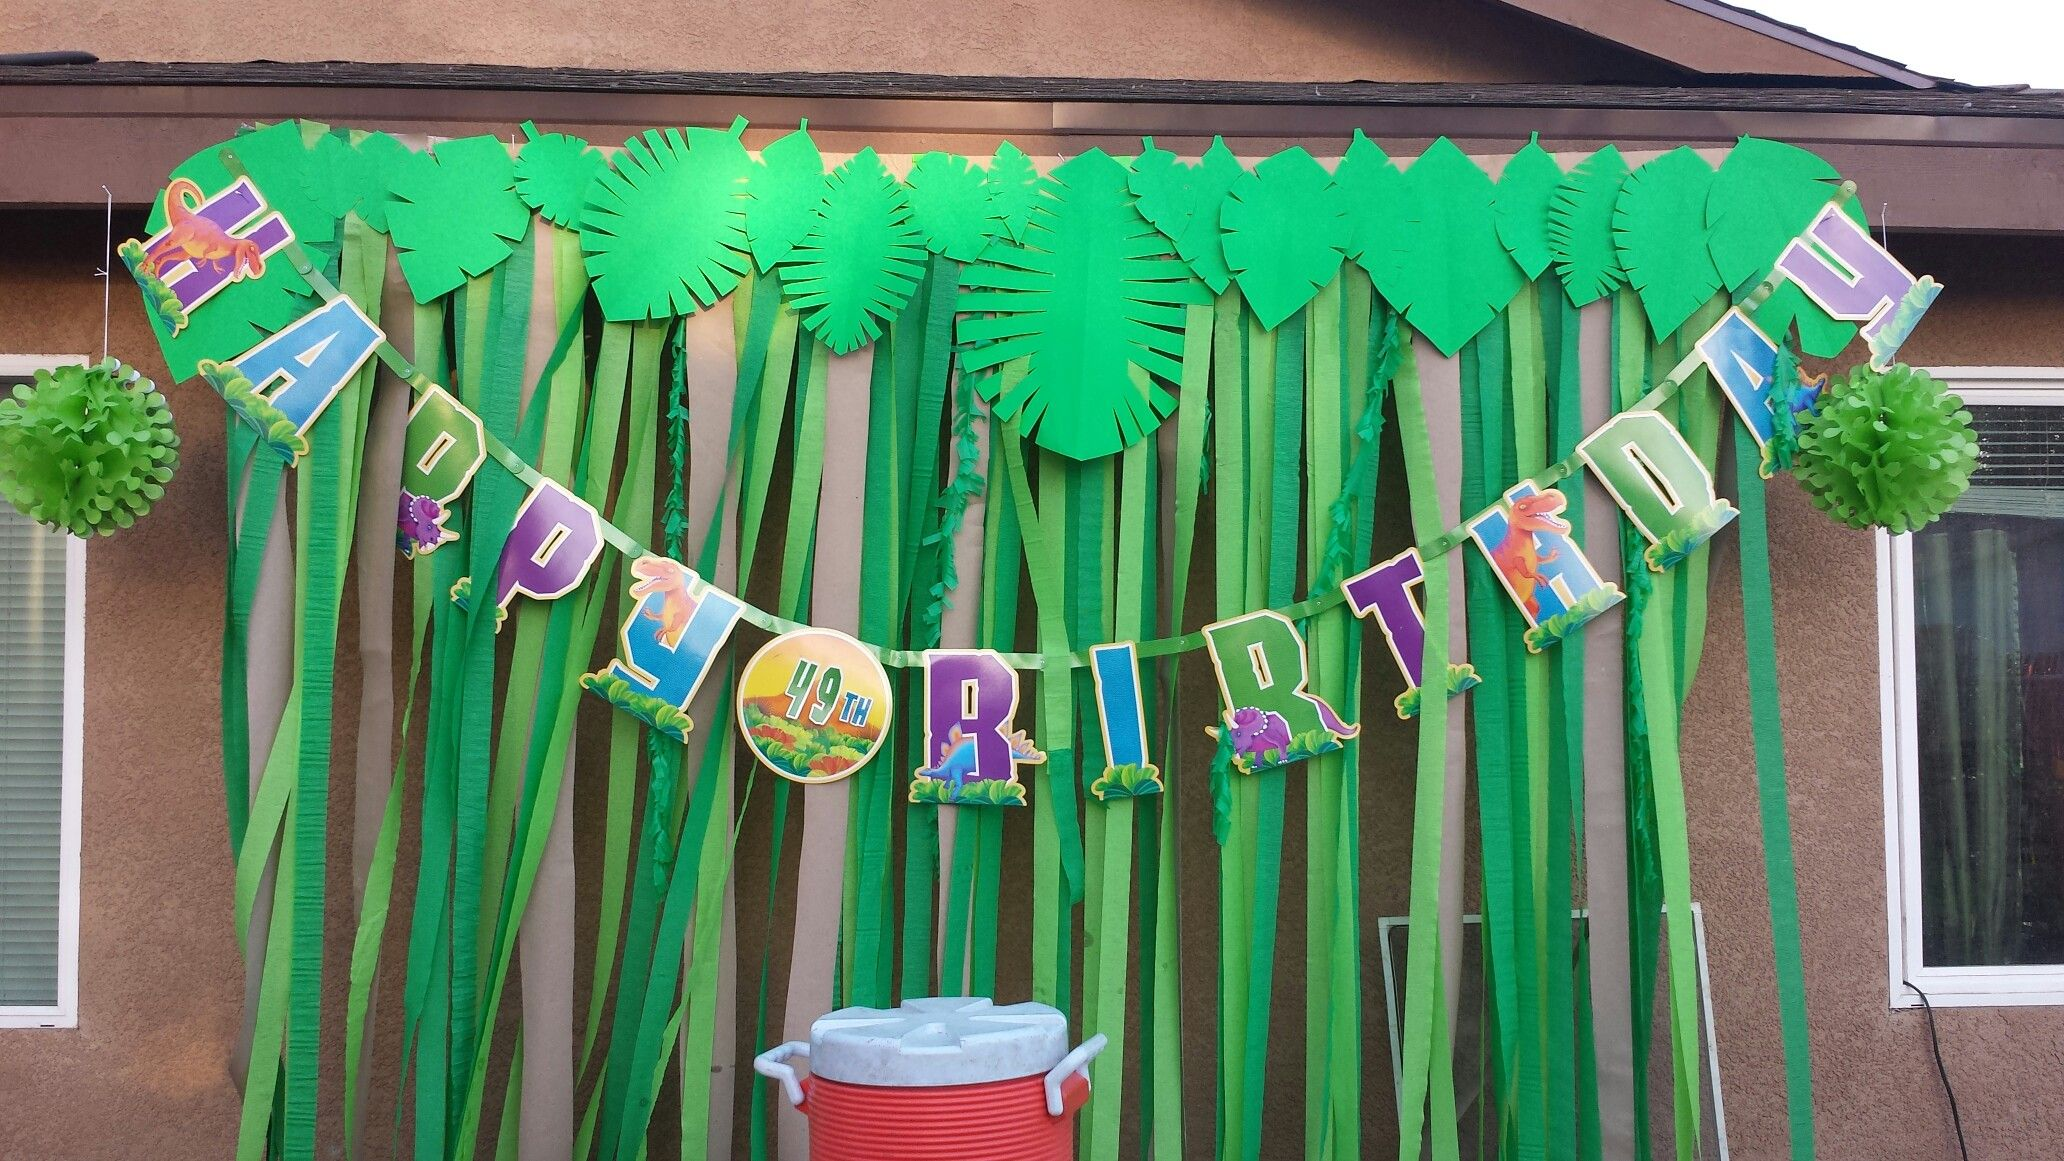 Prehistoric Dinosaur Birthday Party Table Backdrop Using Streamer Hand Crafted